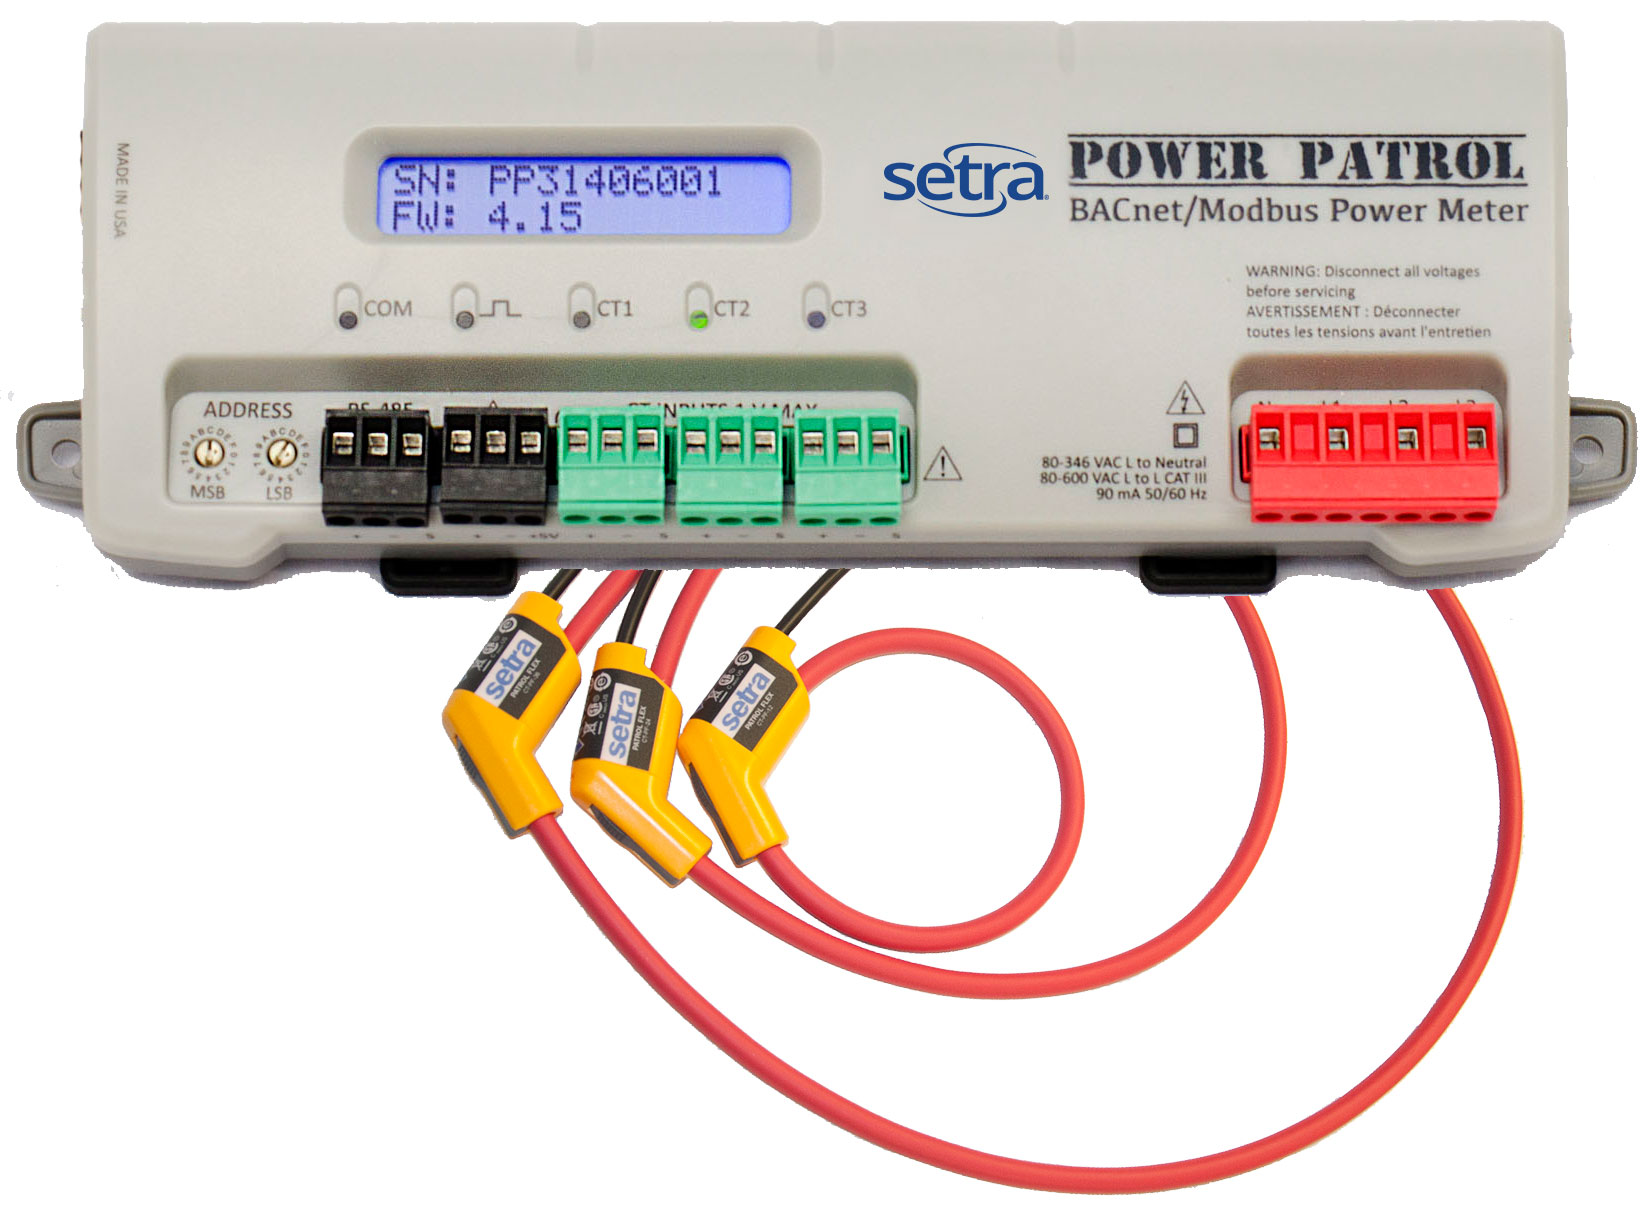 Setra Power Patrol - Networked Power Meter